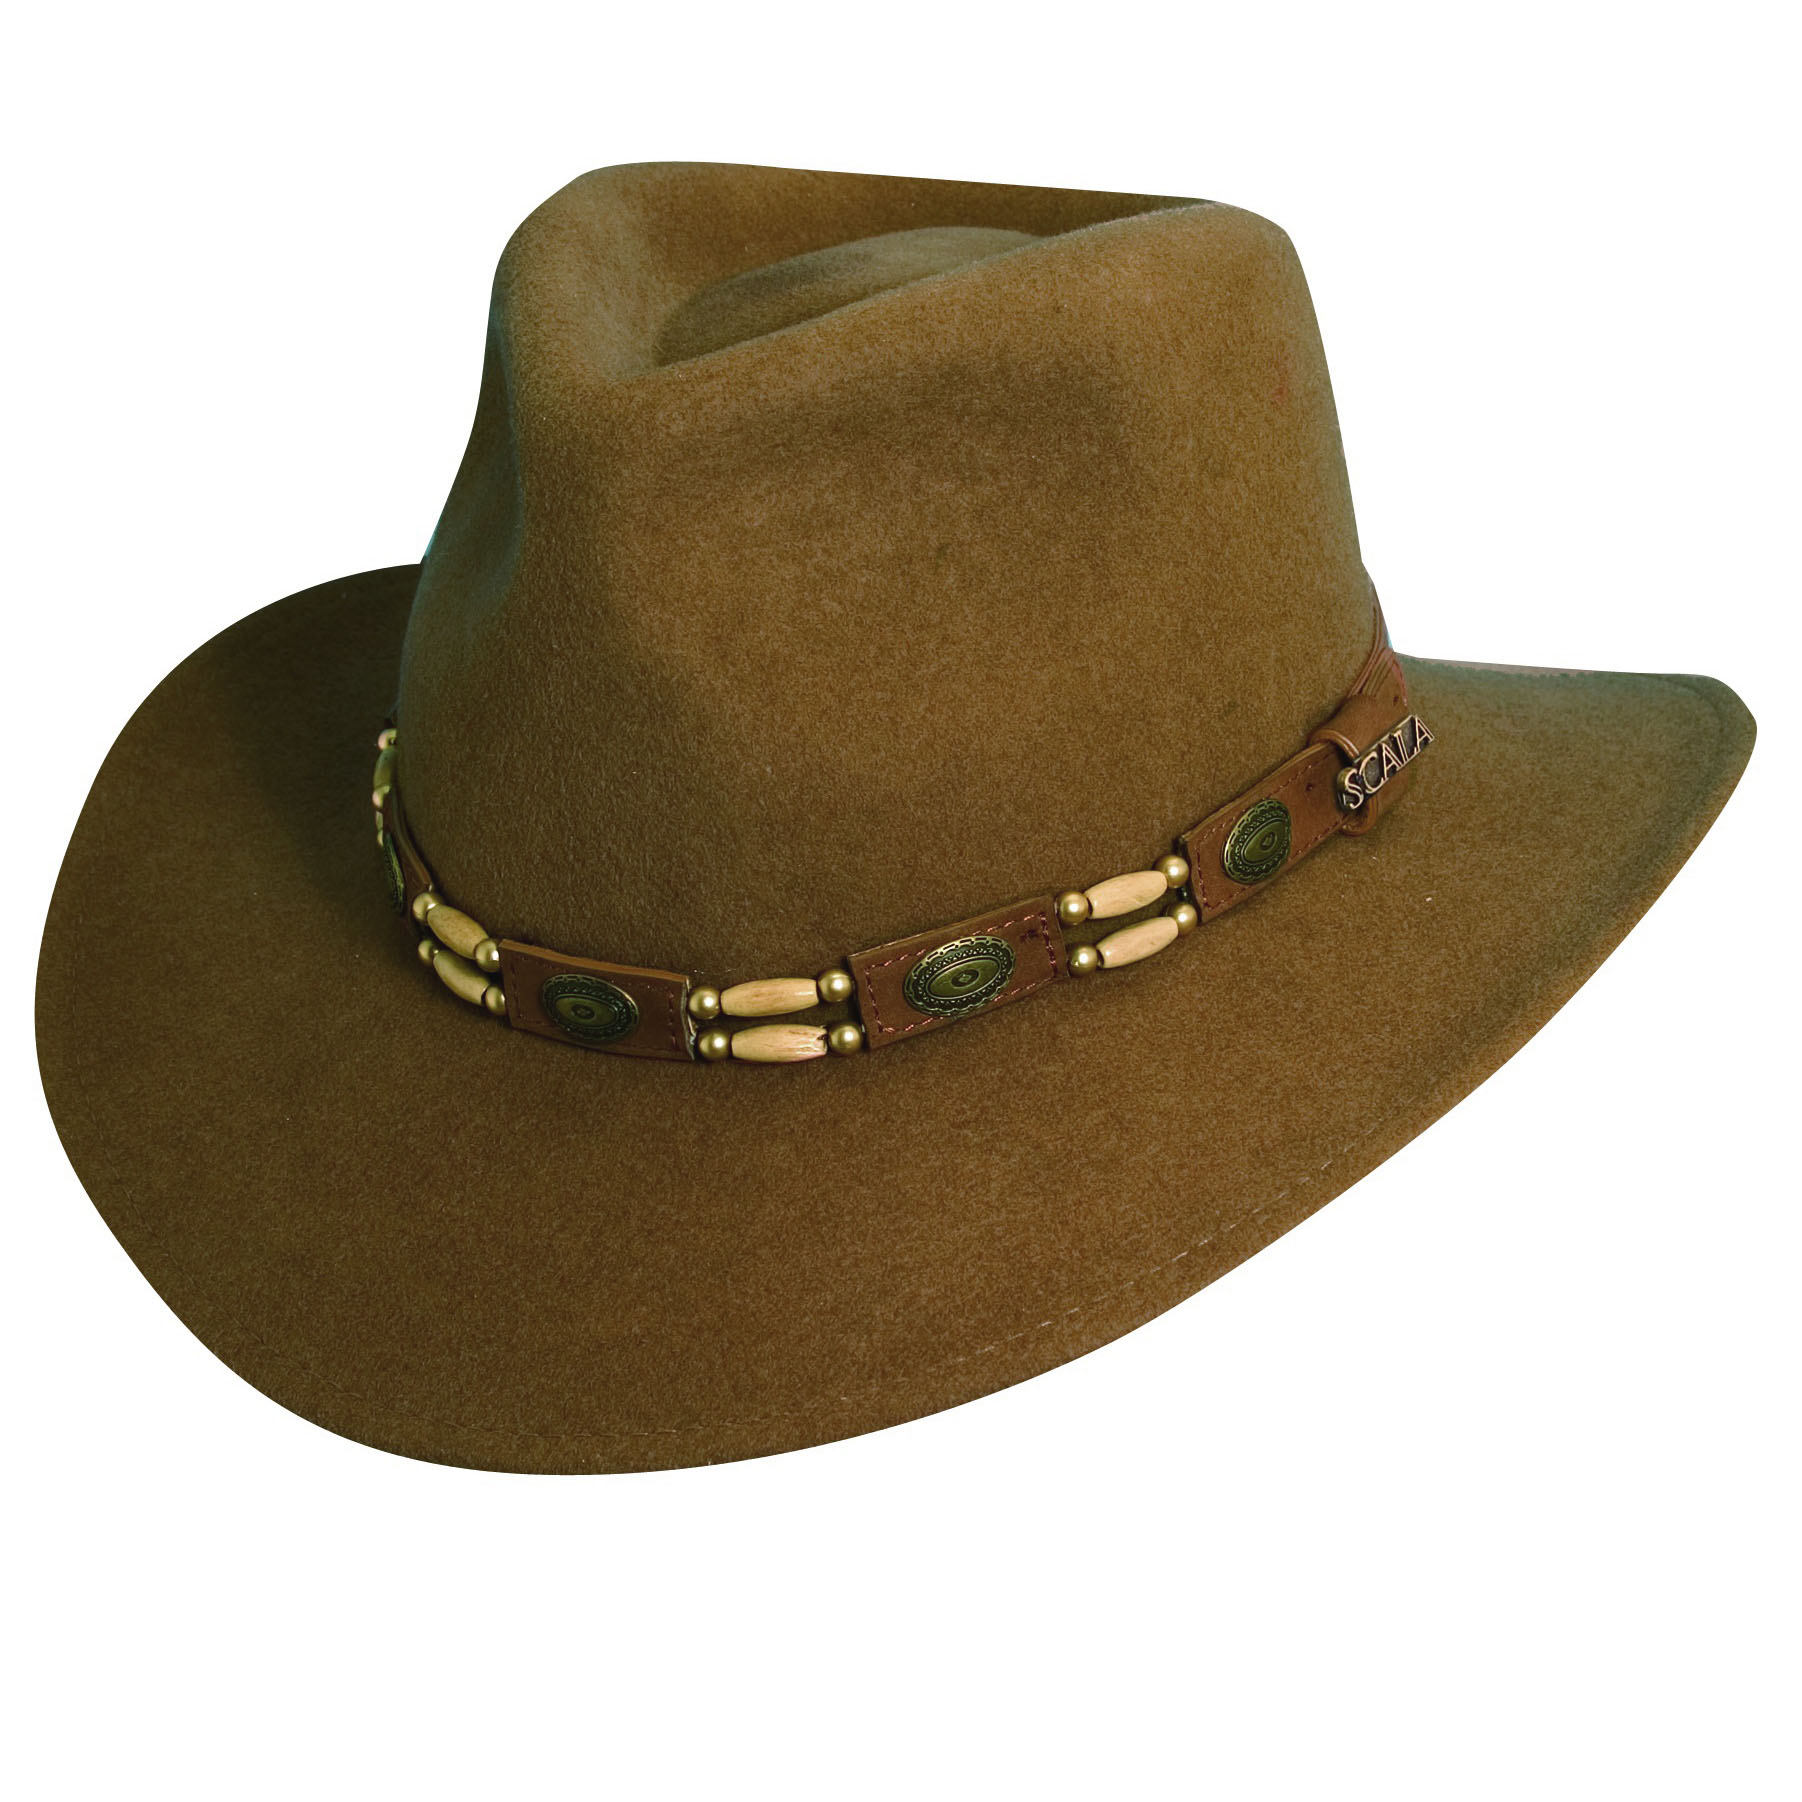 099080b0c Wool Felt Outback Hat with Beads